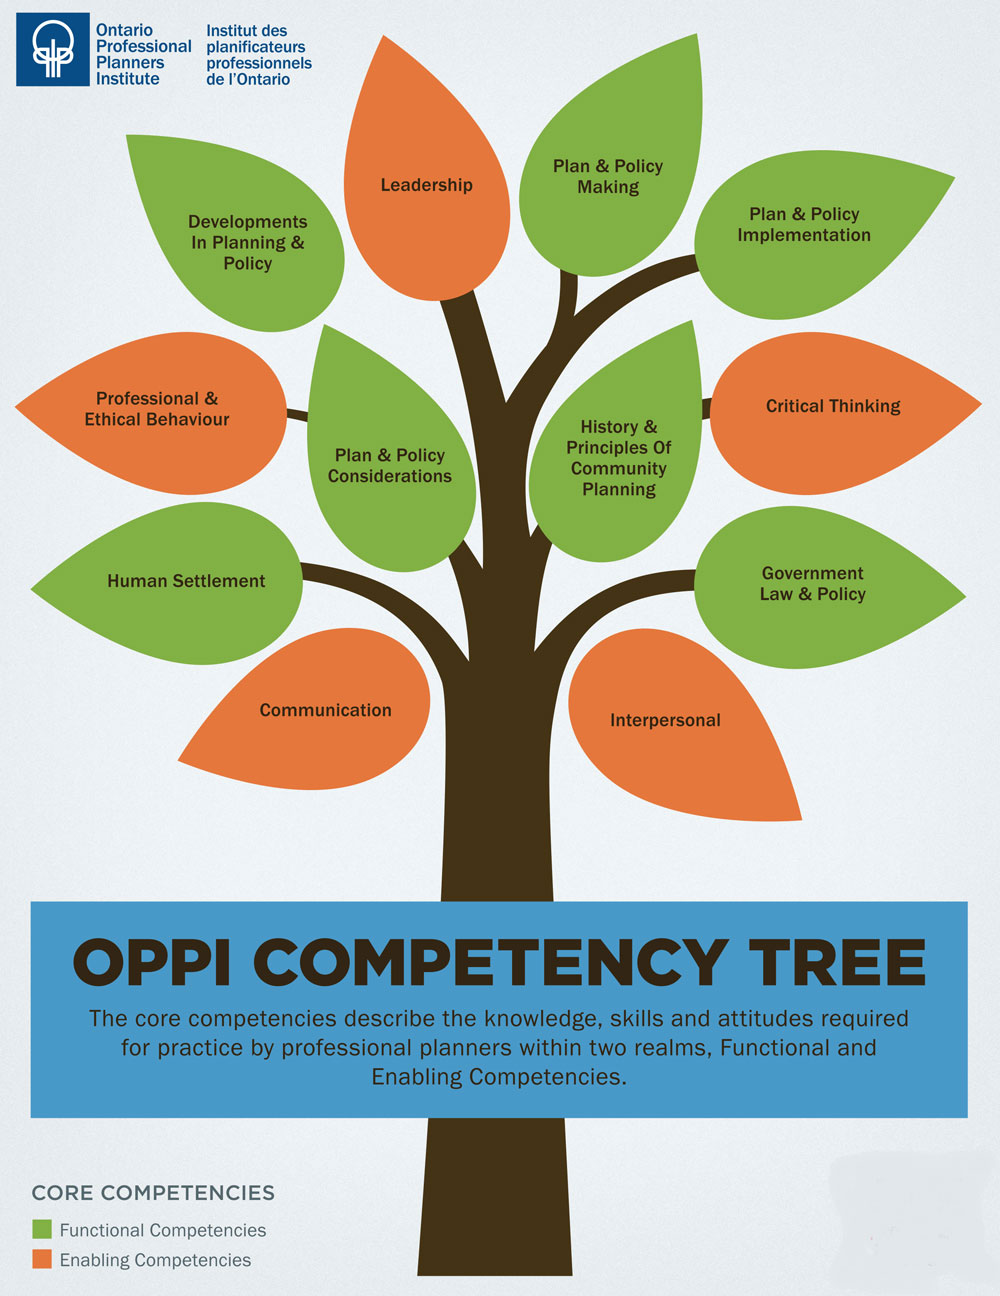 OPPI Planner Competency Tree